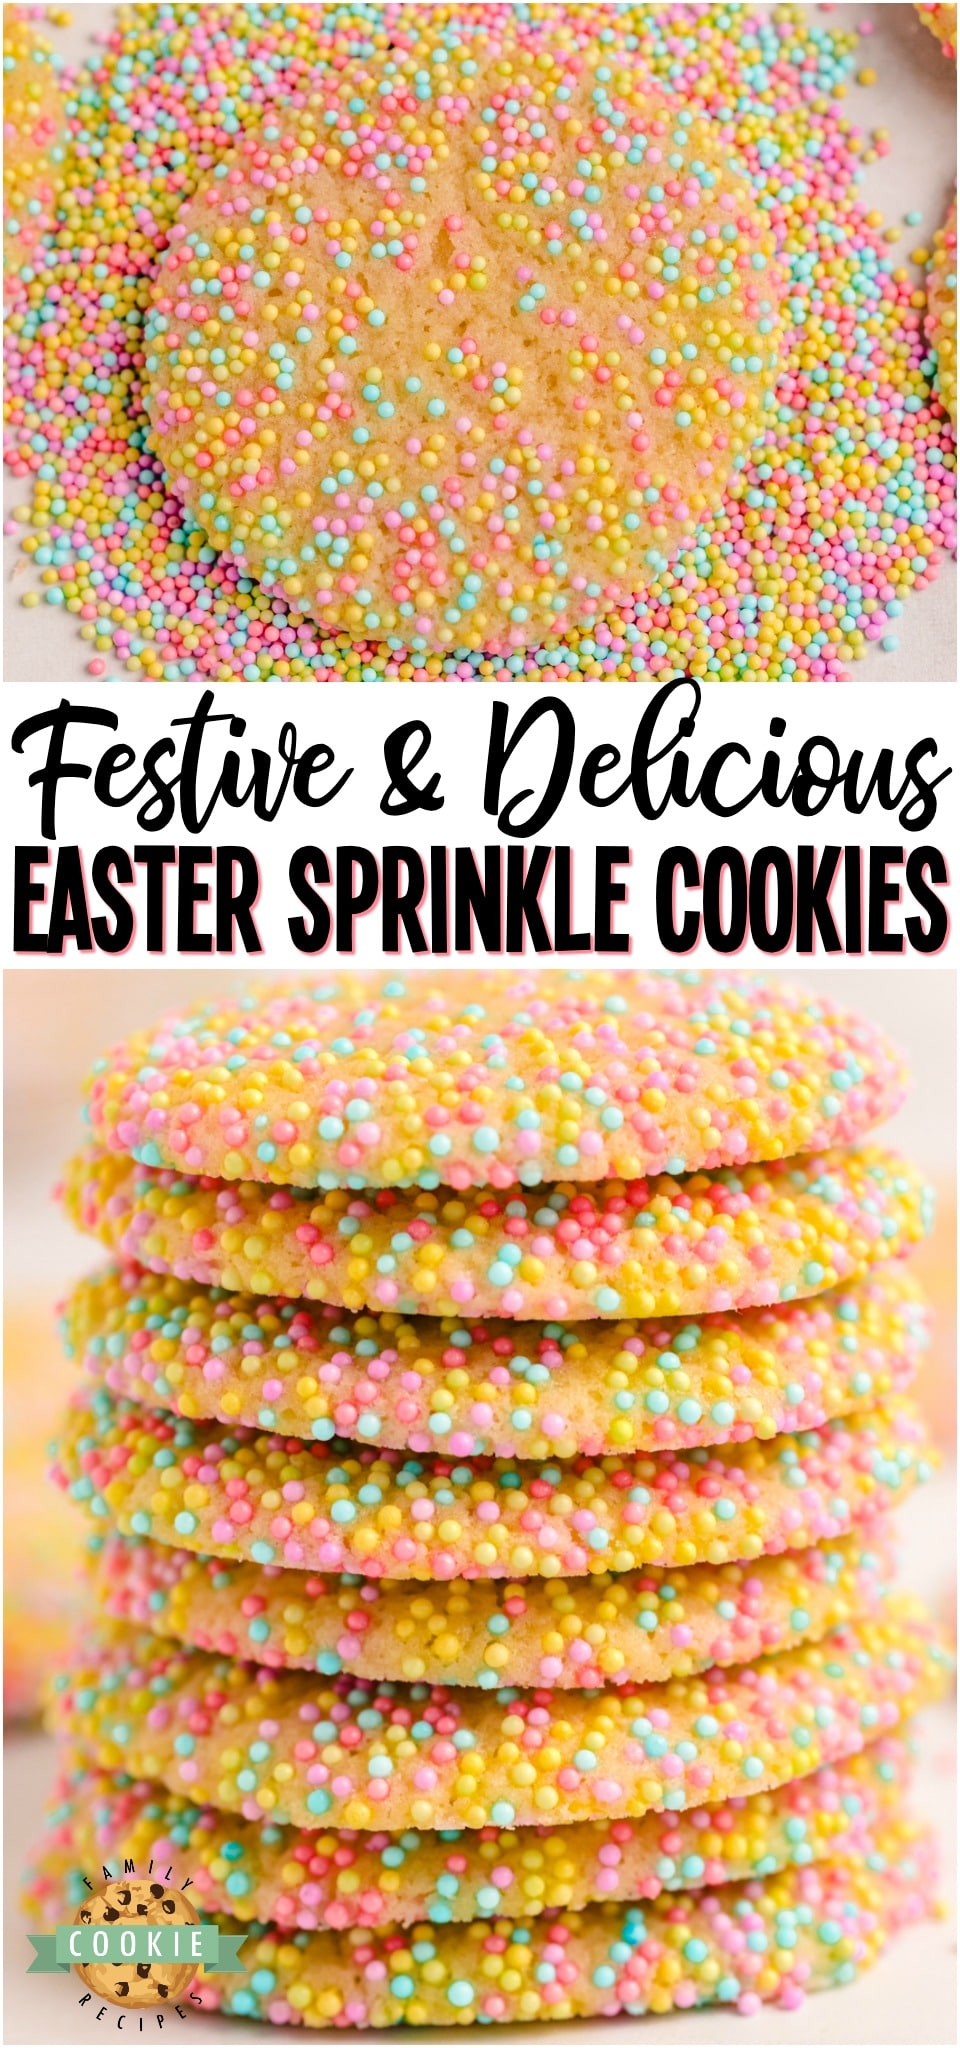 Easter Sprinkle Cookies are a great way to celebrate the holiday with a sweet treat. The colorful sprinkles on a soft and chewy sugar cookie make for a delicious snack that looks as good as it tastes! #Easter #Spring #summer #cookies #baking #Sprinkles #SprinkleCookies #cookies #dessert from FAMILY COOKIE RECIPES via @familycookierecipes